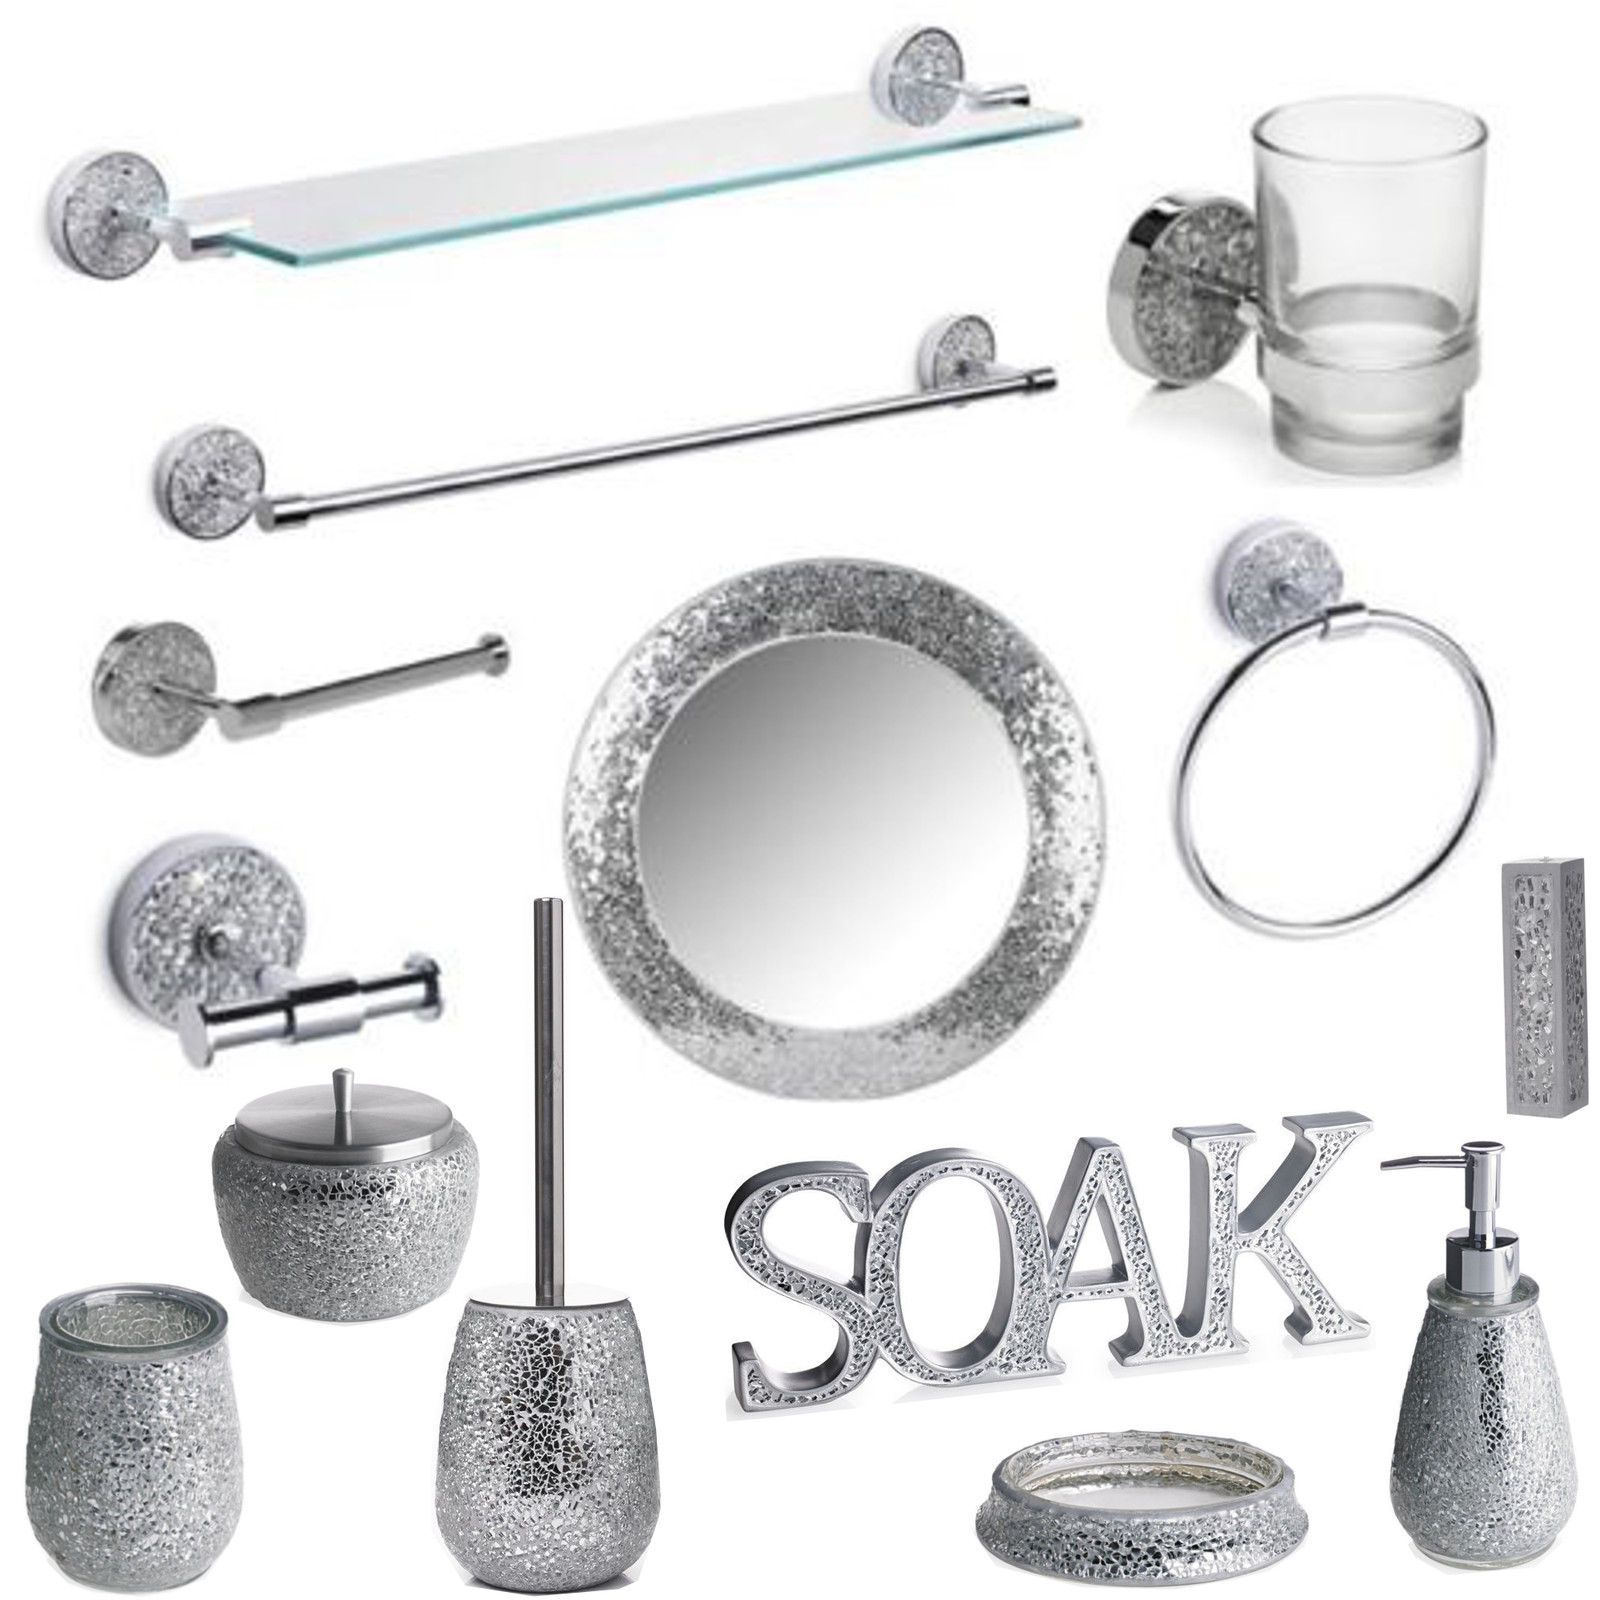 Silver Mosaic Bathroom Accessories Set  Sparkle Mirror Accessory Bath Sets mosaic bathroom accessories silver sparkle mirror